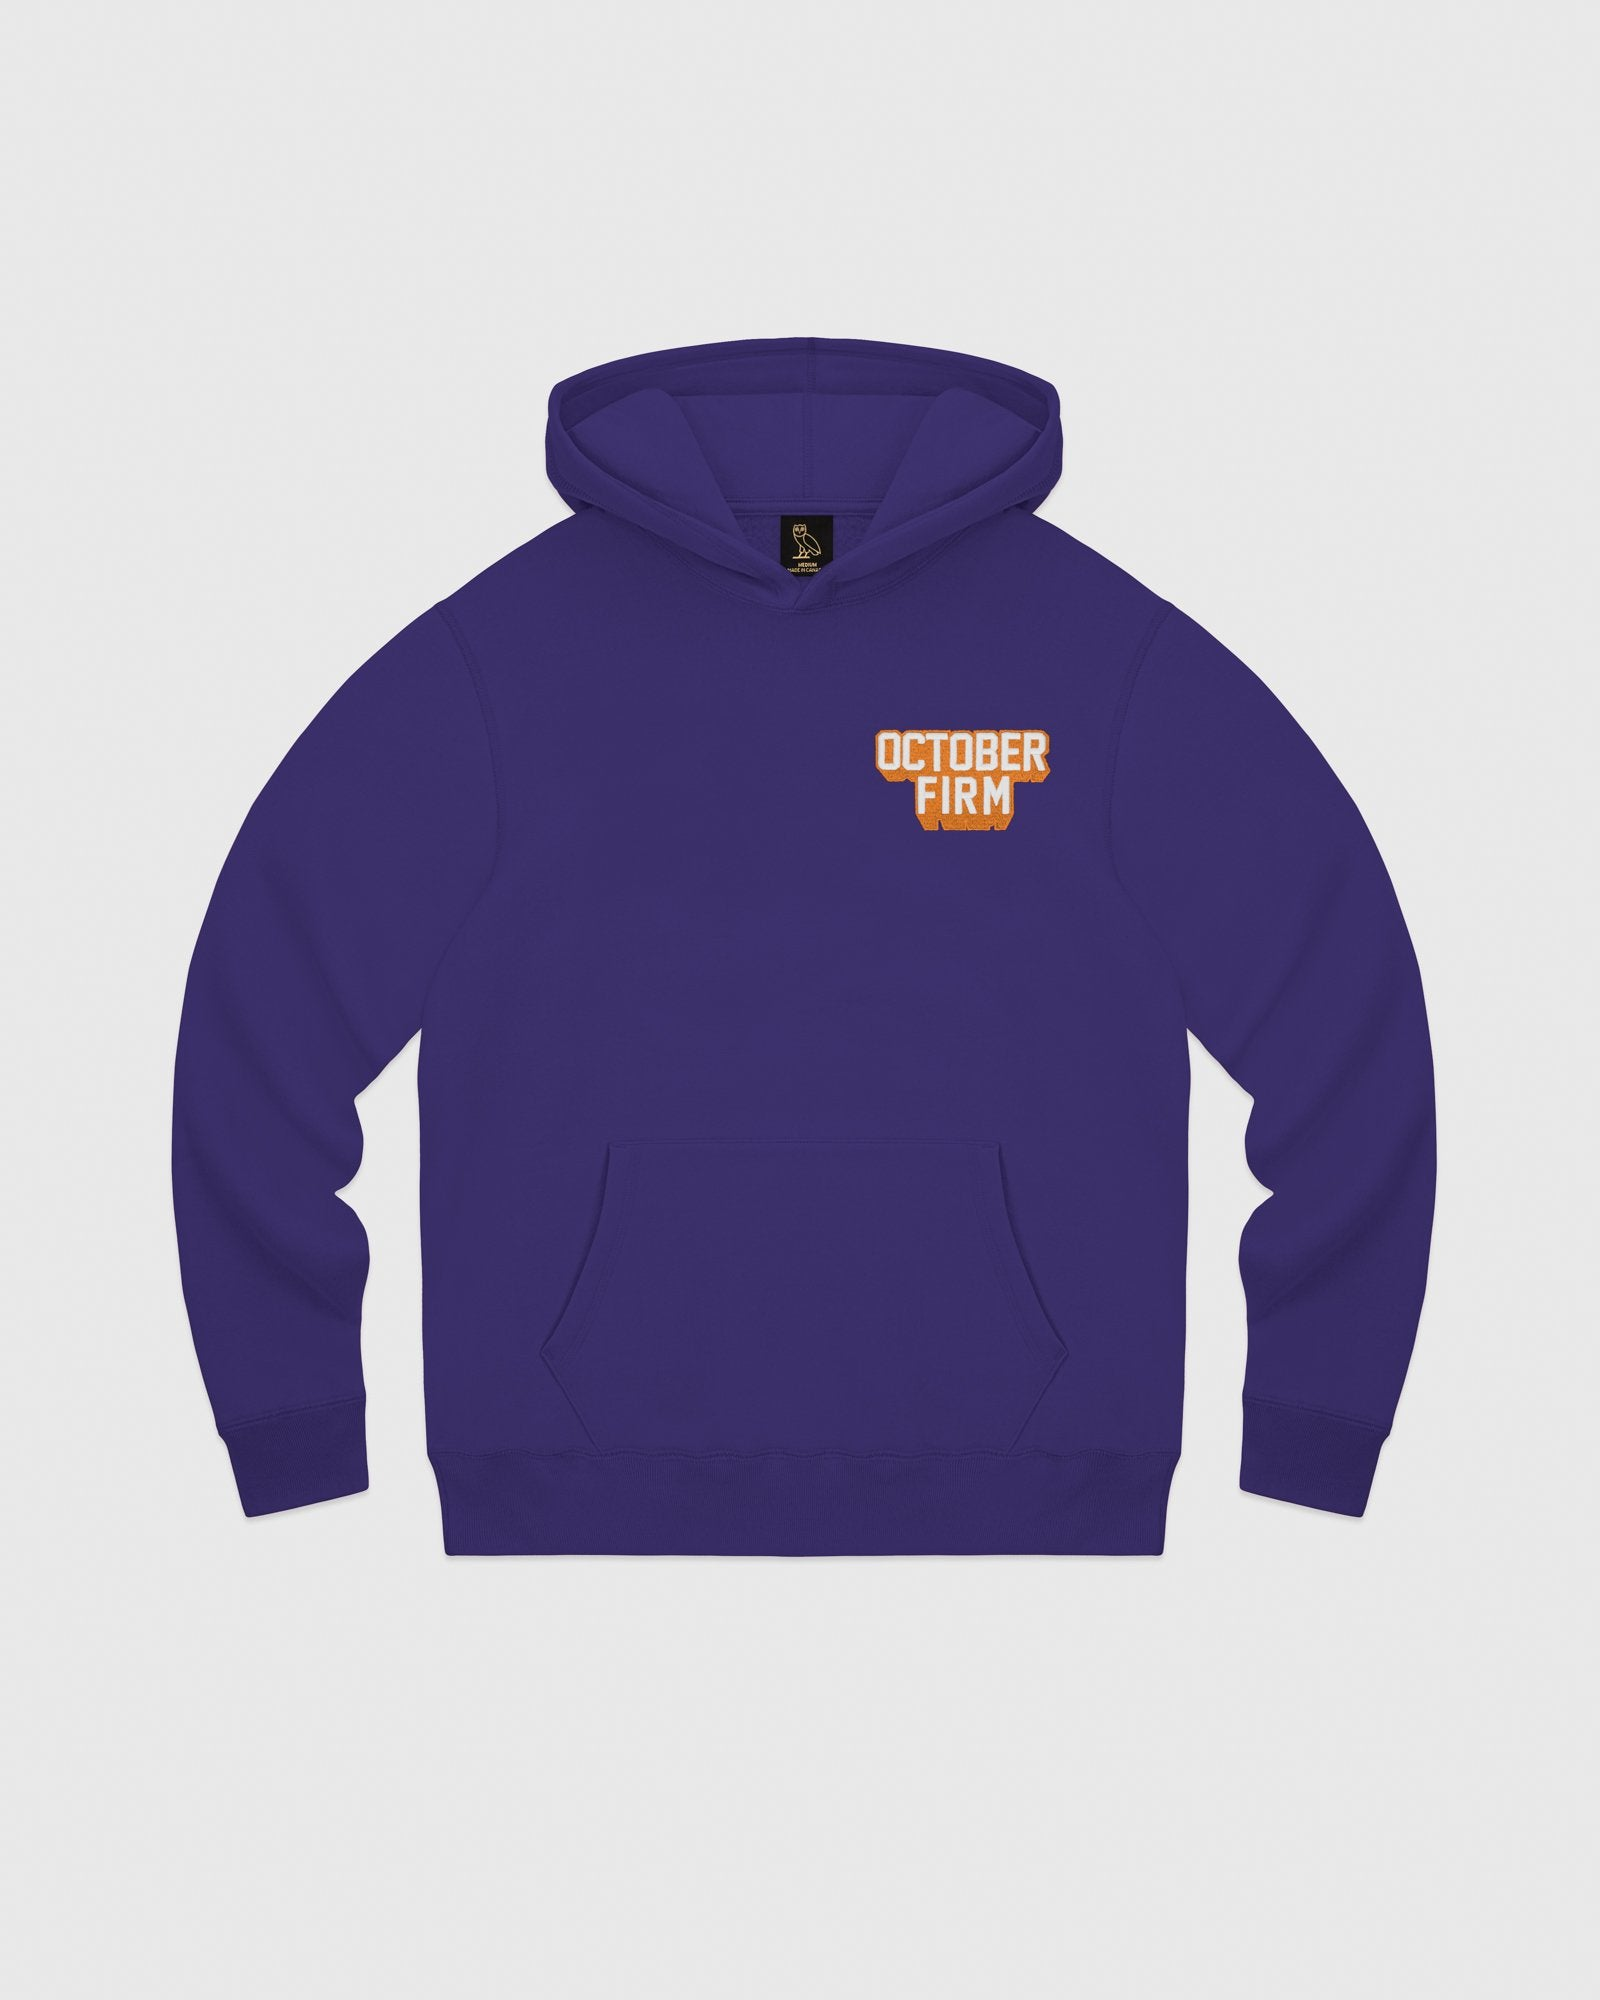 OCTOBER FIRM SHADOW HOODIE - PURPLE IMAGE #1